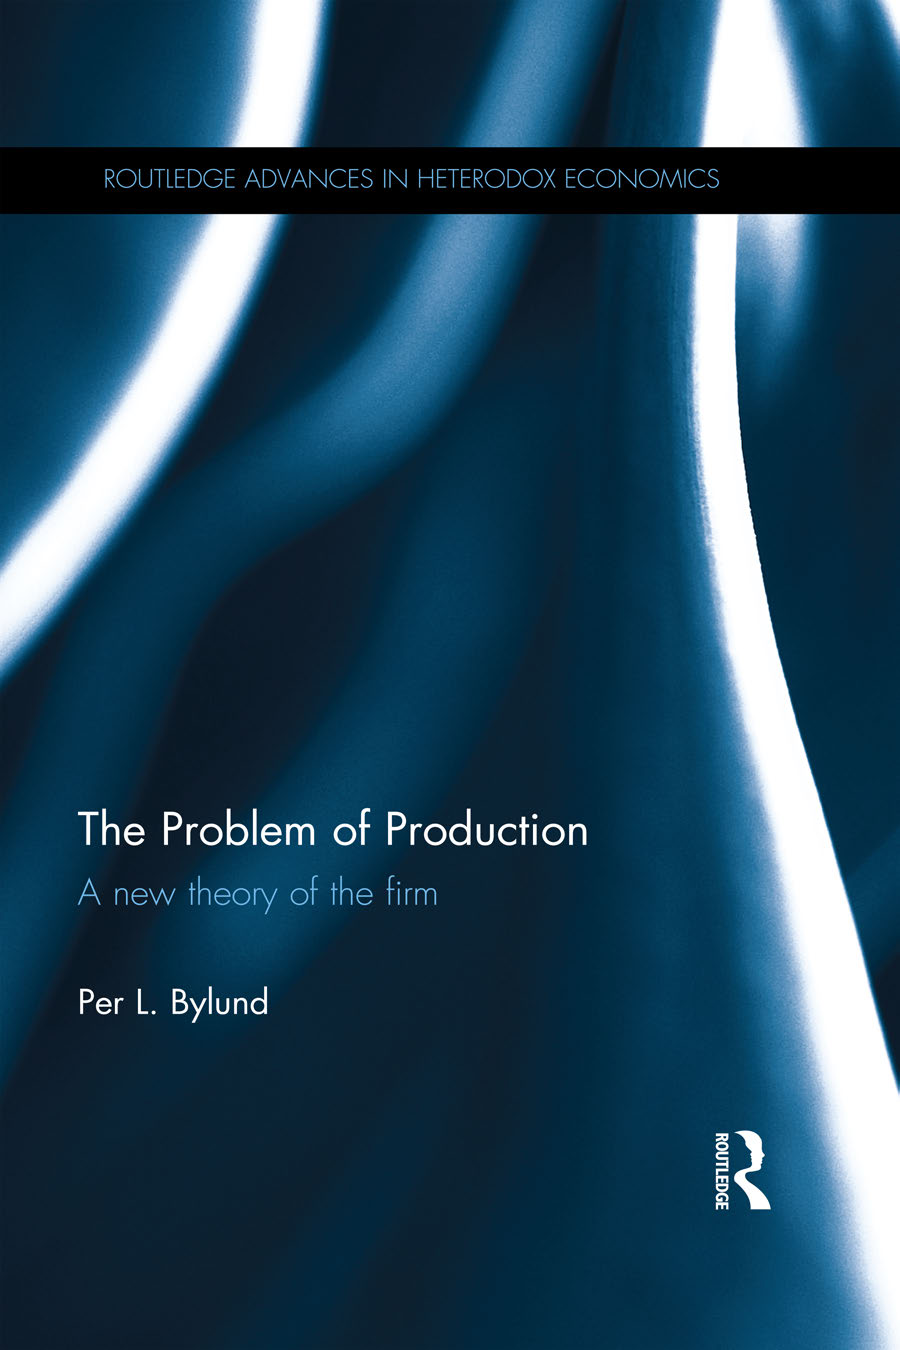 Per Bylund's book review-The Problem of Production: A New Theory of the Firm